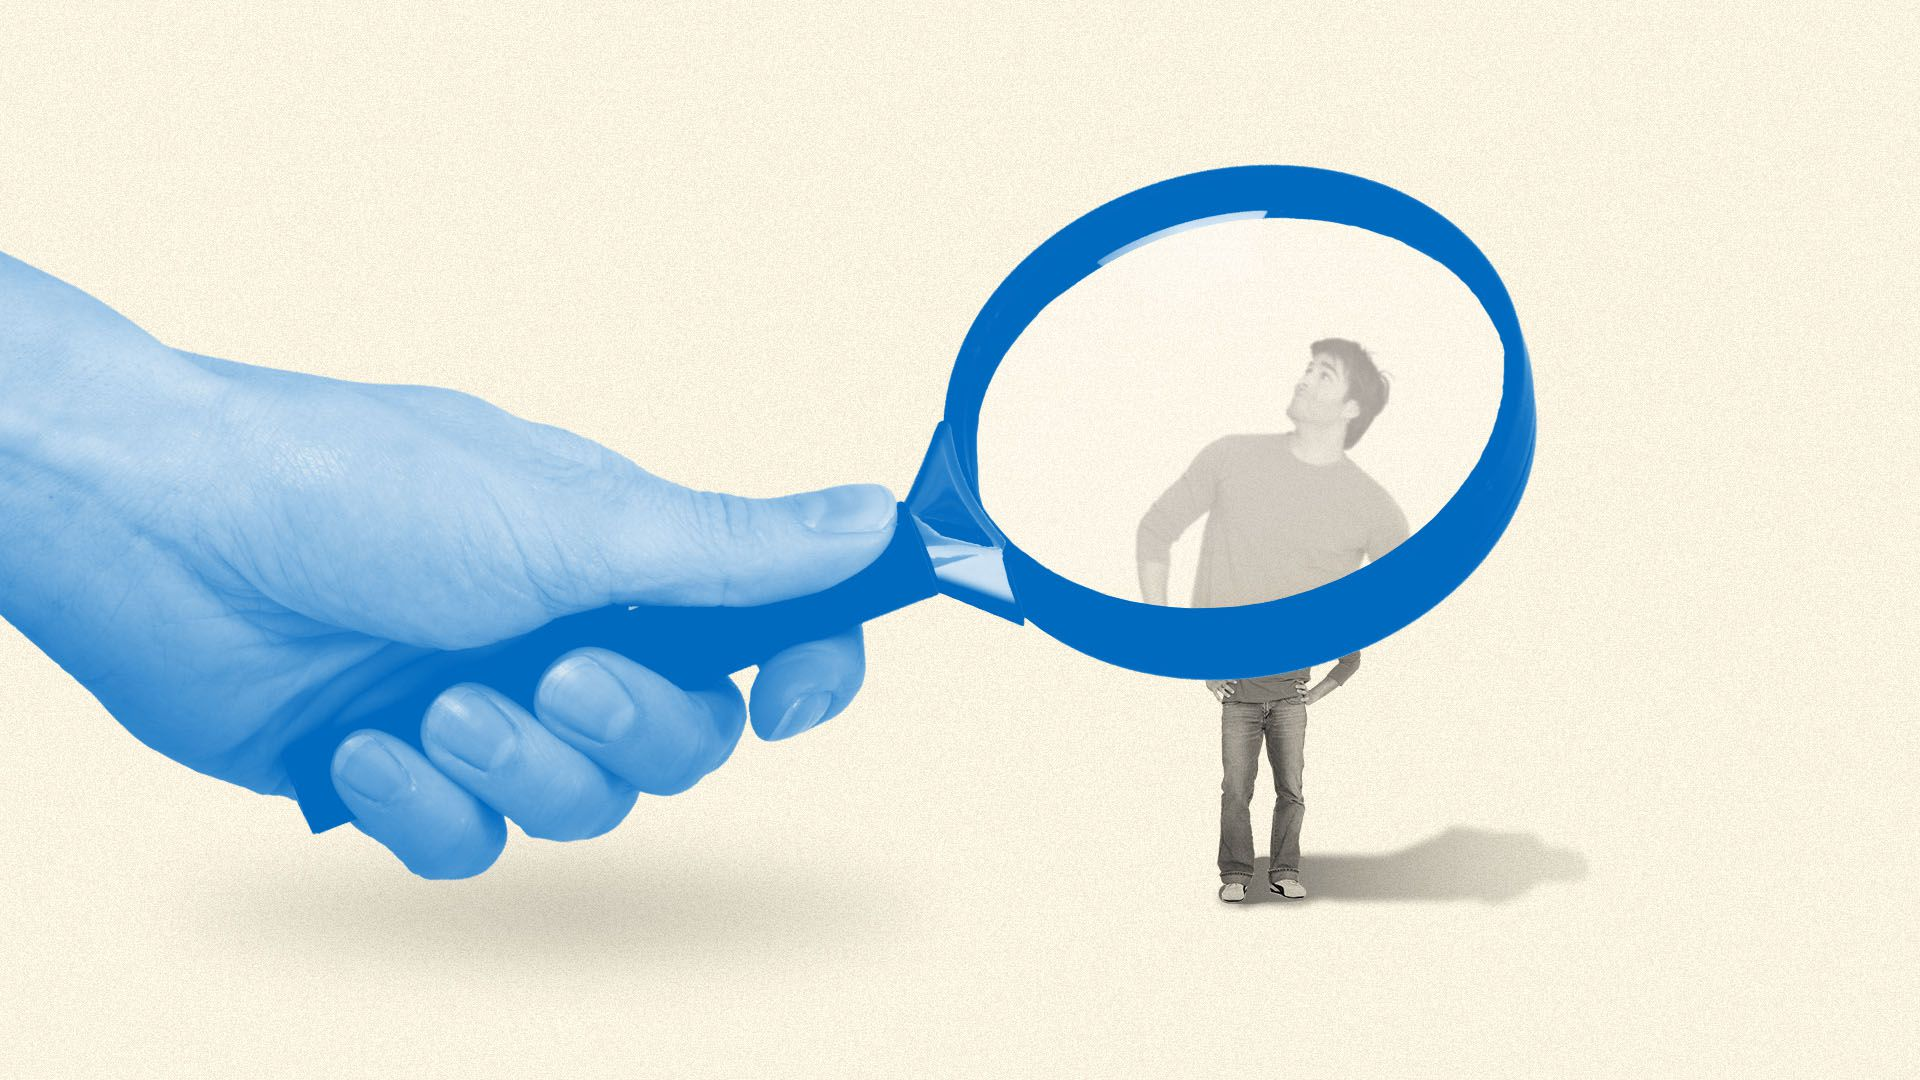 Illustration of a giant magnifying glass with a tiny man magnified under it